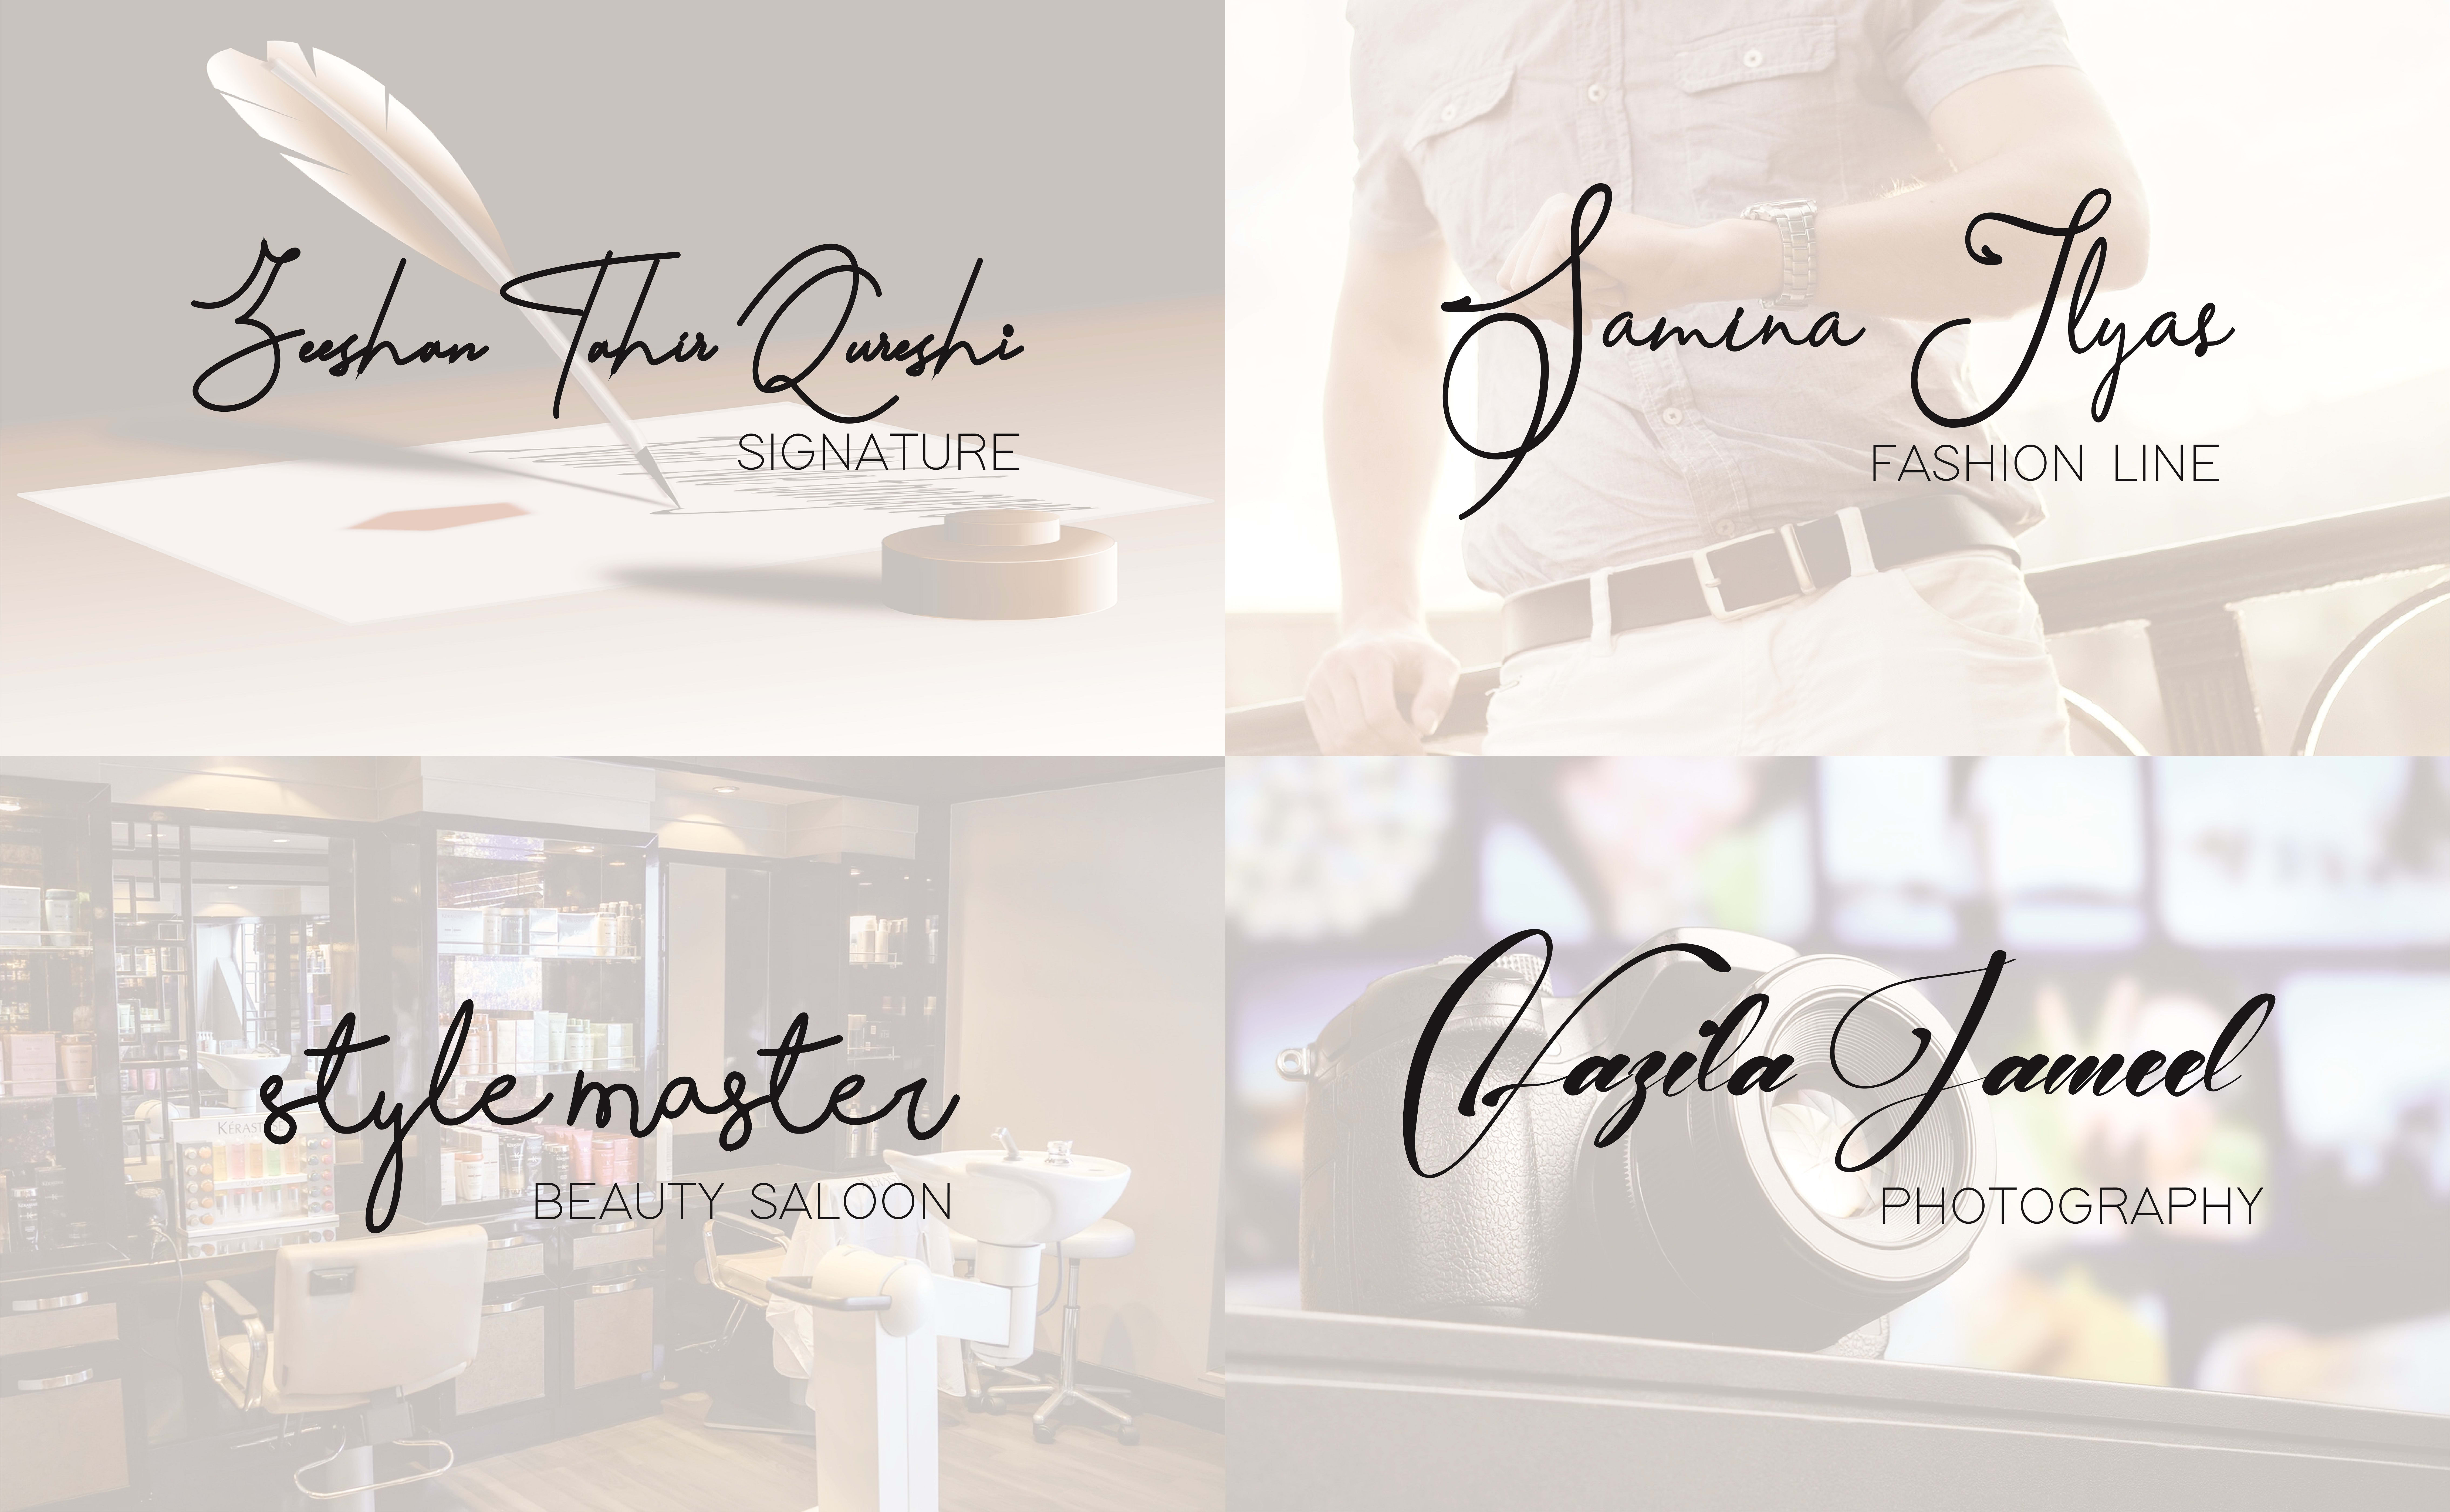 graphic_icons : I will design a high quality signature logo in just 5  dollar for $5 on www fiverr com